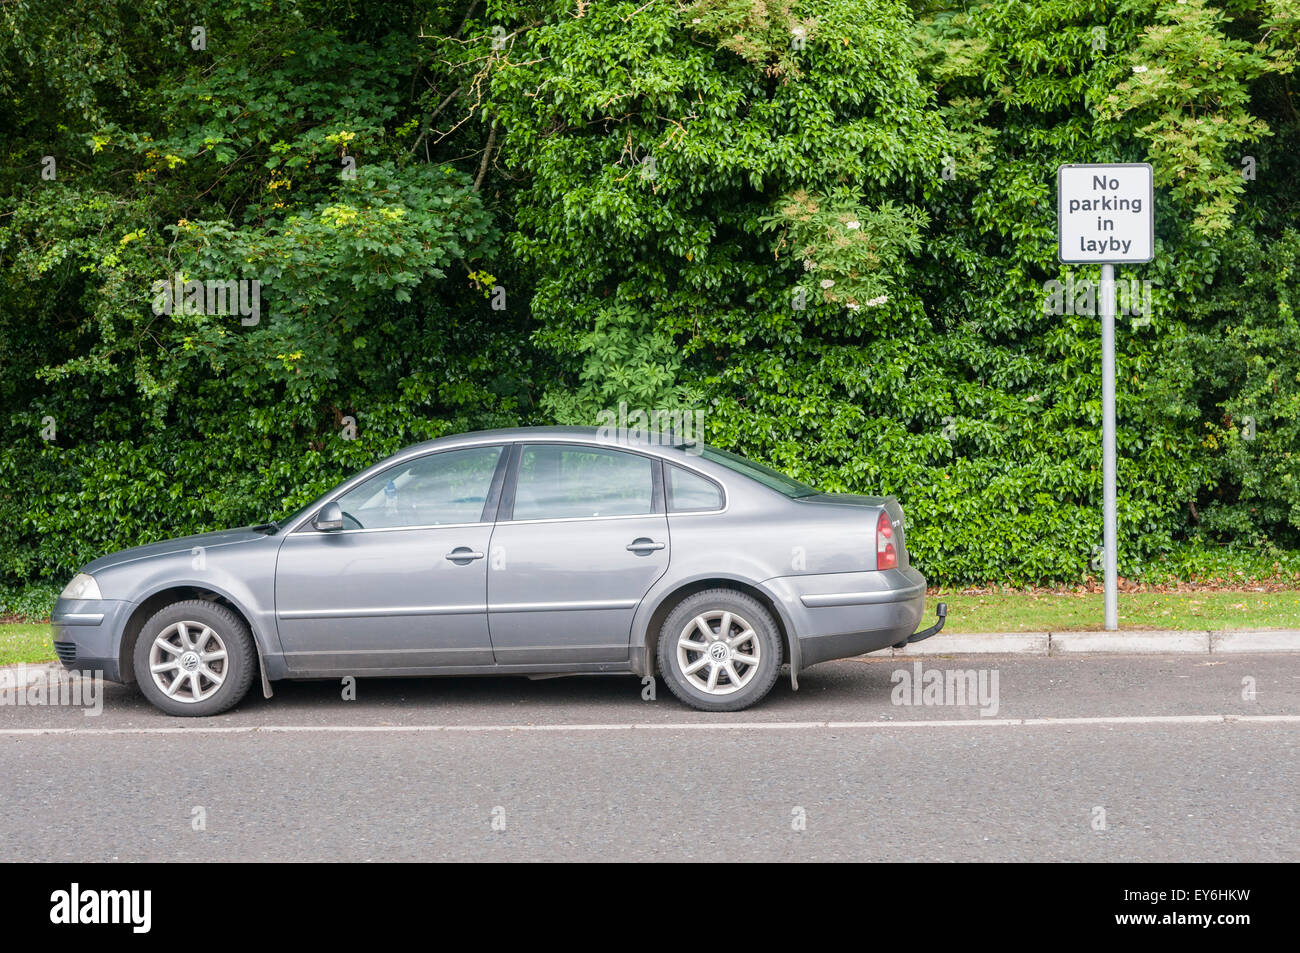 Car parked in a layby despite sign saying 'No parking in layby' - Stock Image